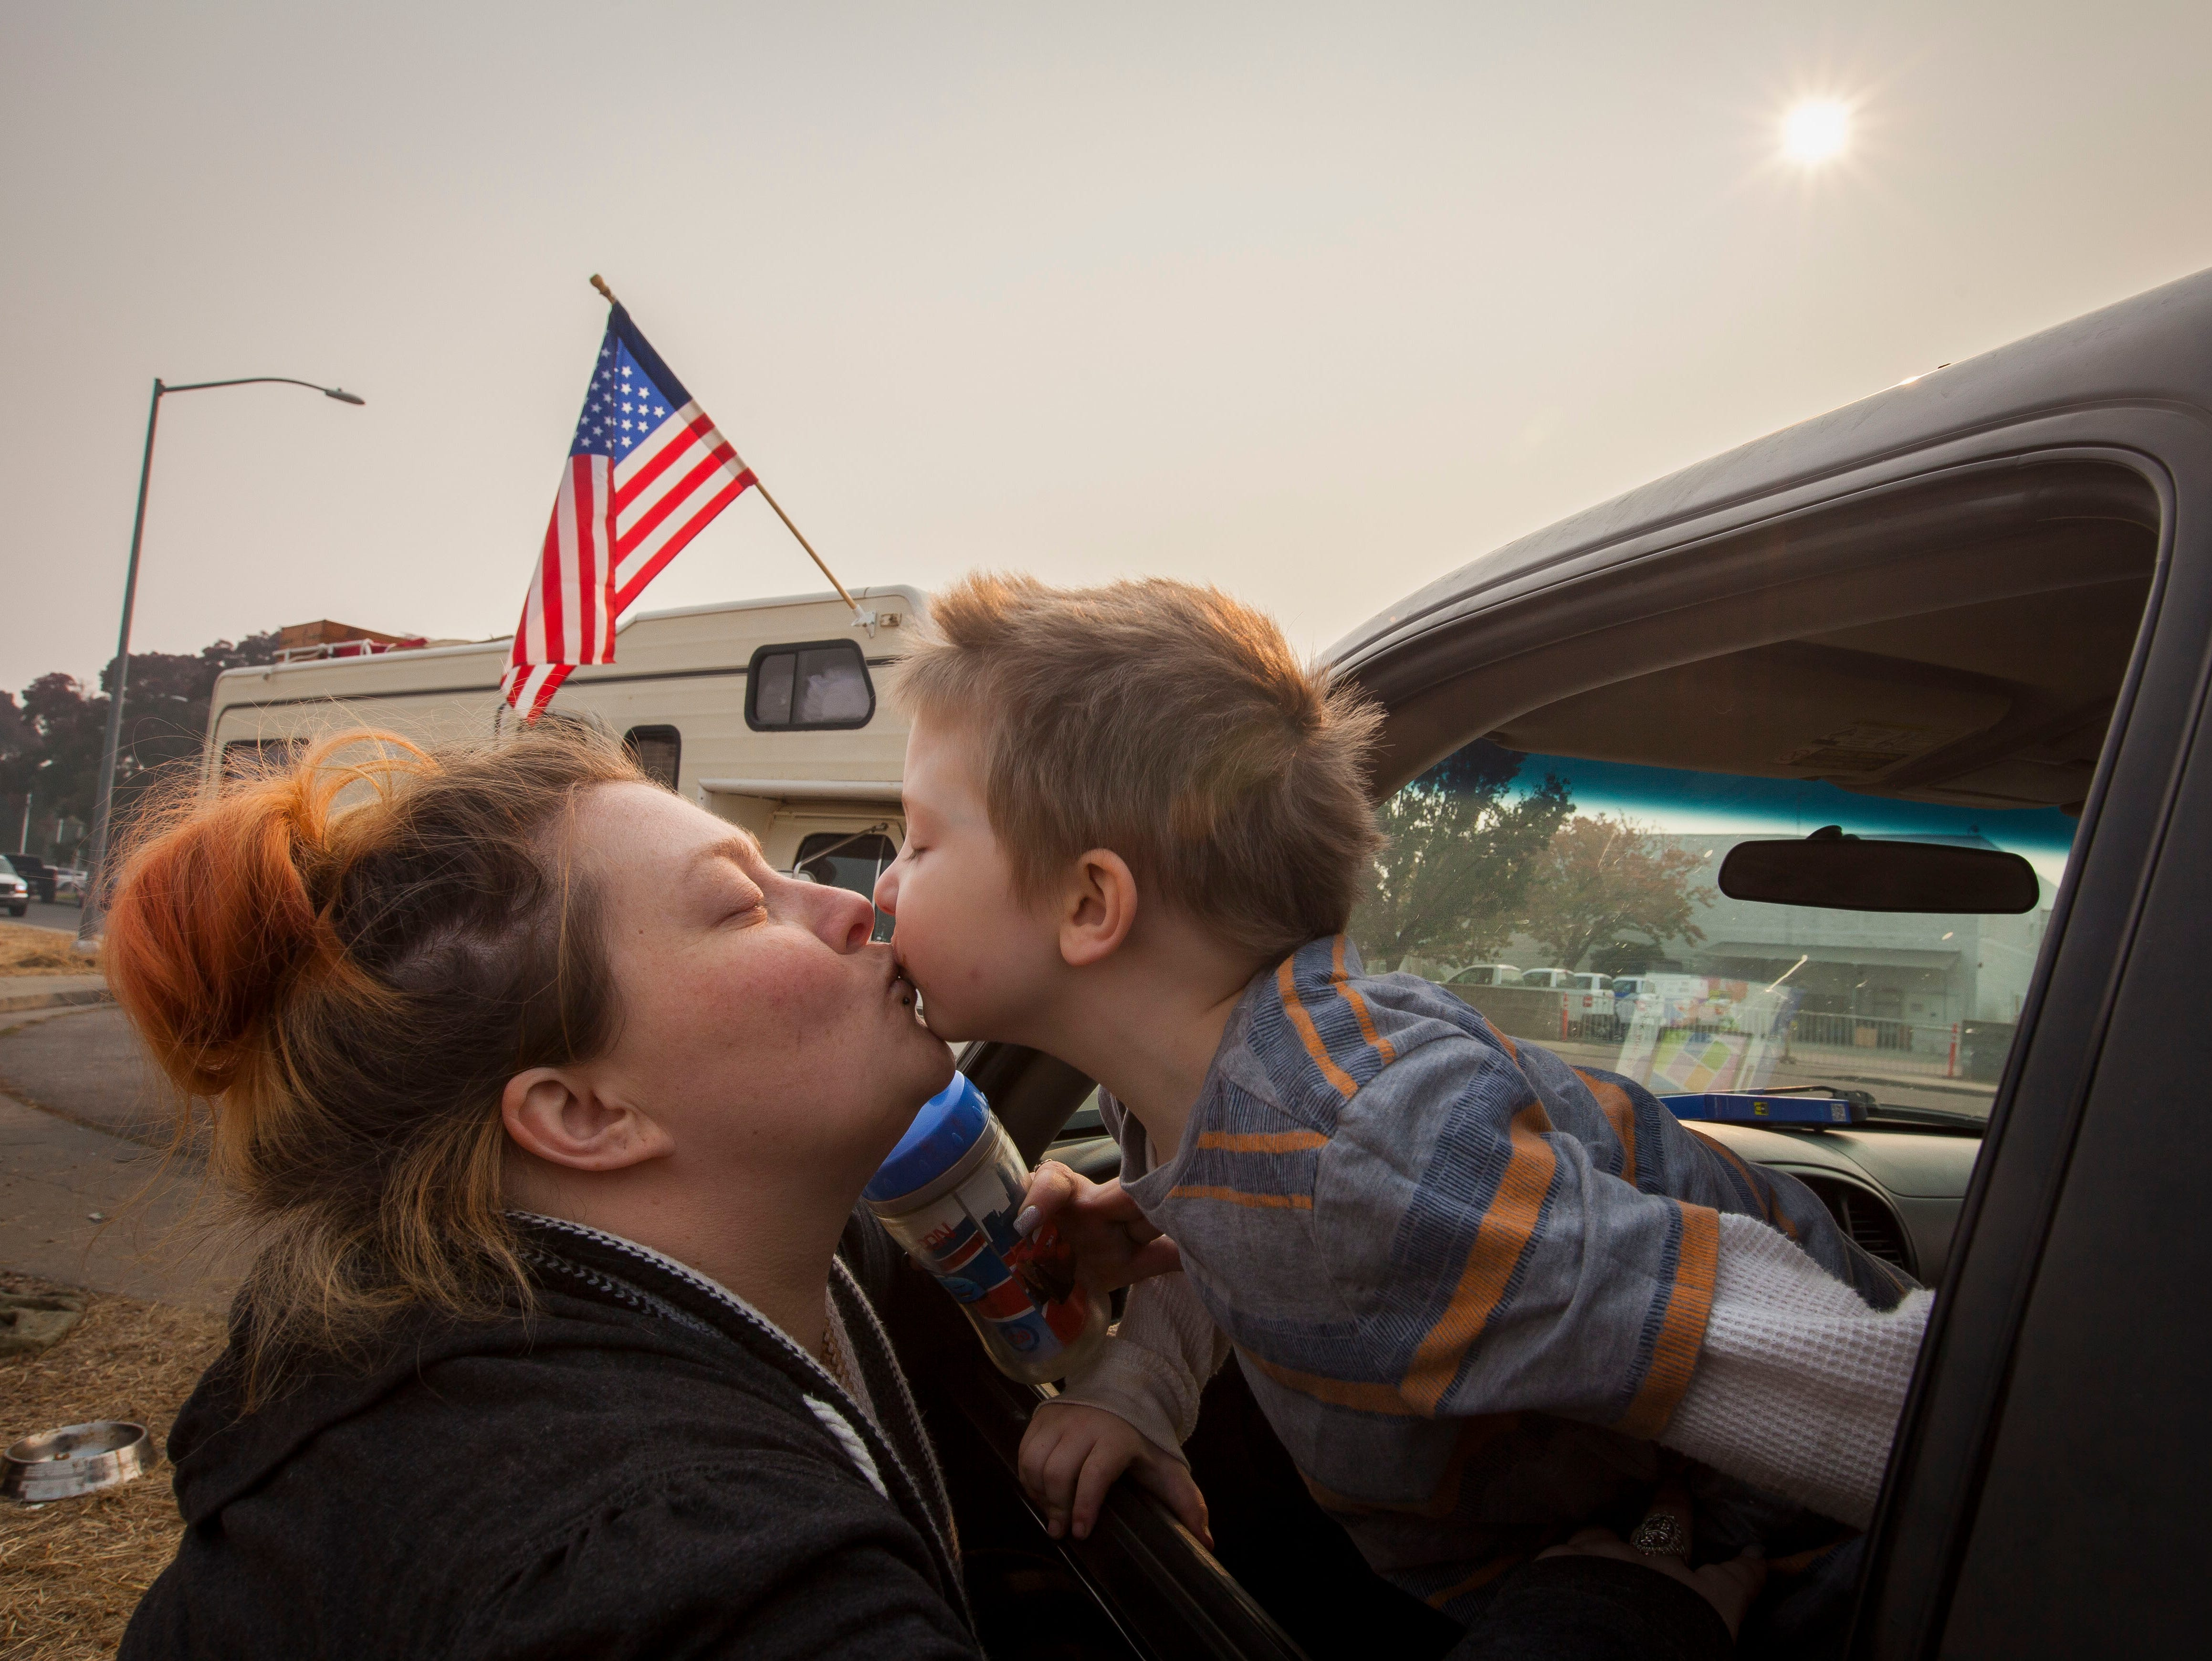 Casey Belcher gets a kiss from her 4-year-old son Bentley who was sitting in the cab of a pick-up truck. Casey, her husband and their three children lost their house and vehicles in the Camp Fire. Her husband's boss has given them a work truck to drive until the family can get situated. The children sleep in the truck at night and the parents share a small tent in a field next to the Walmart in Chico, CA.